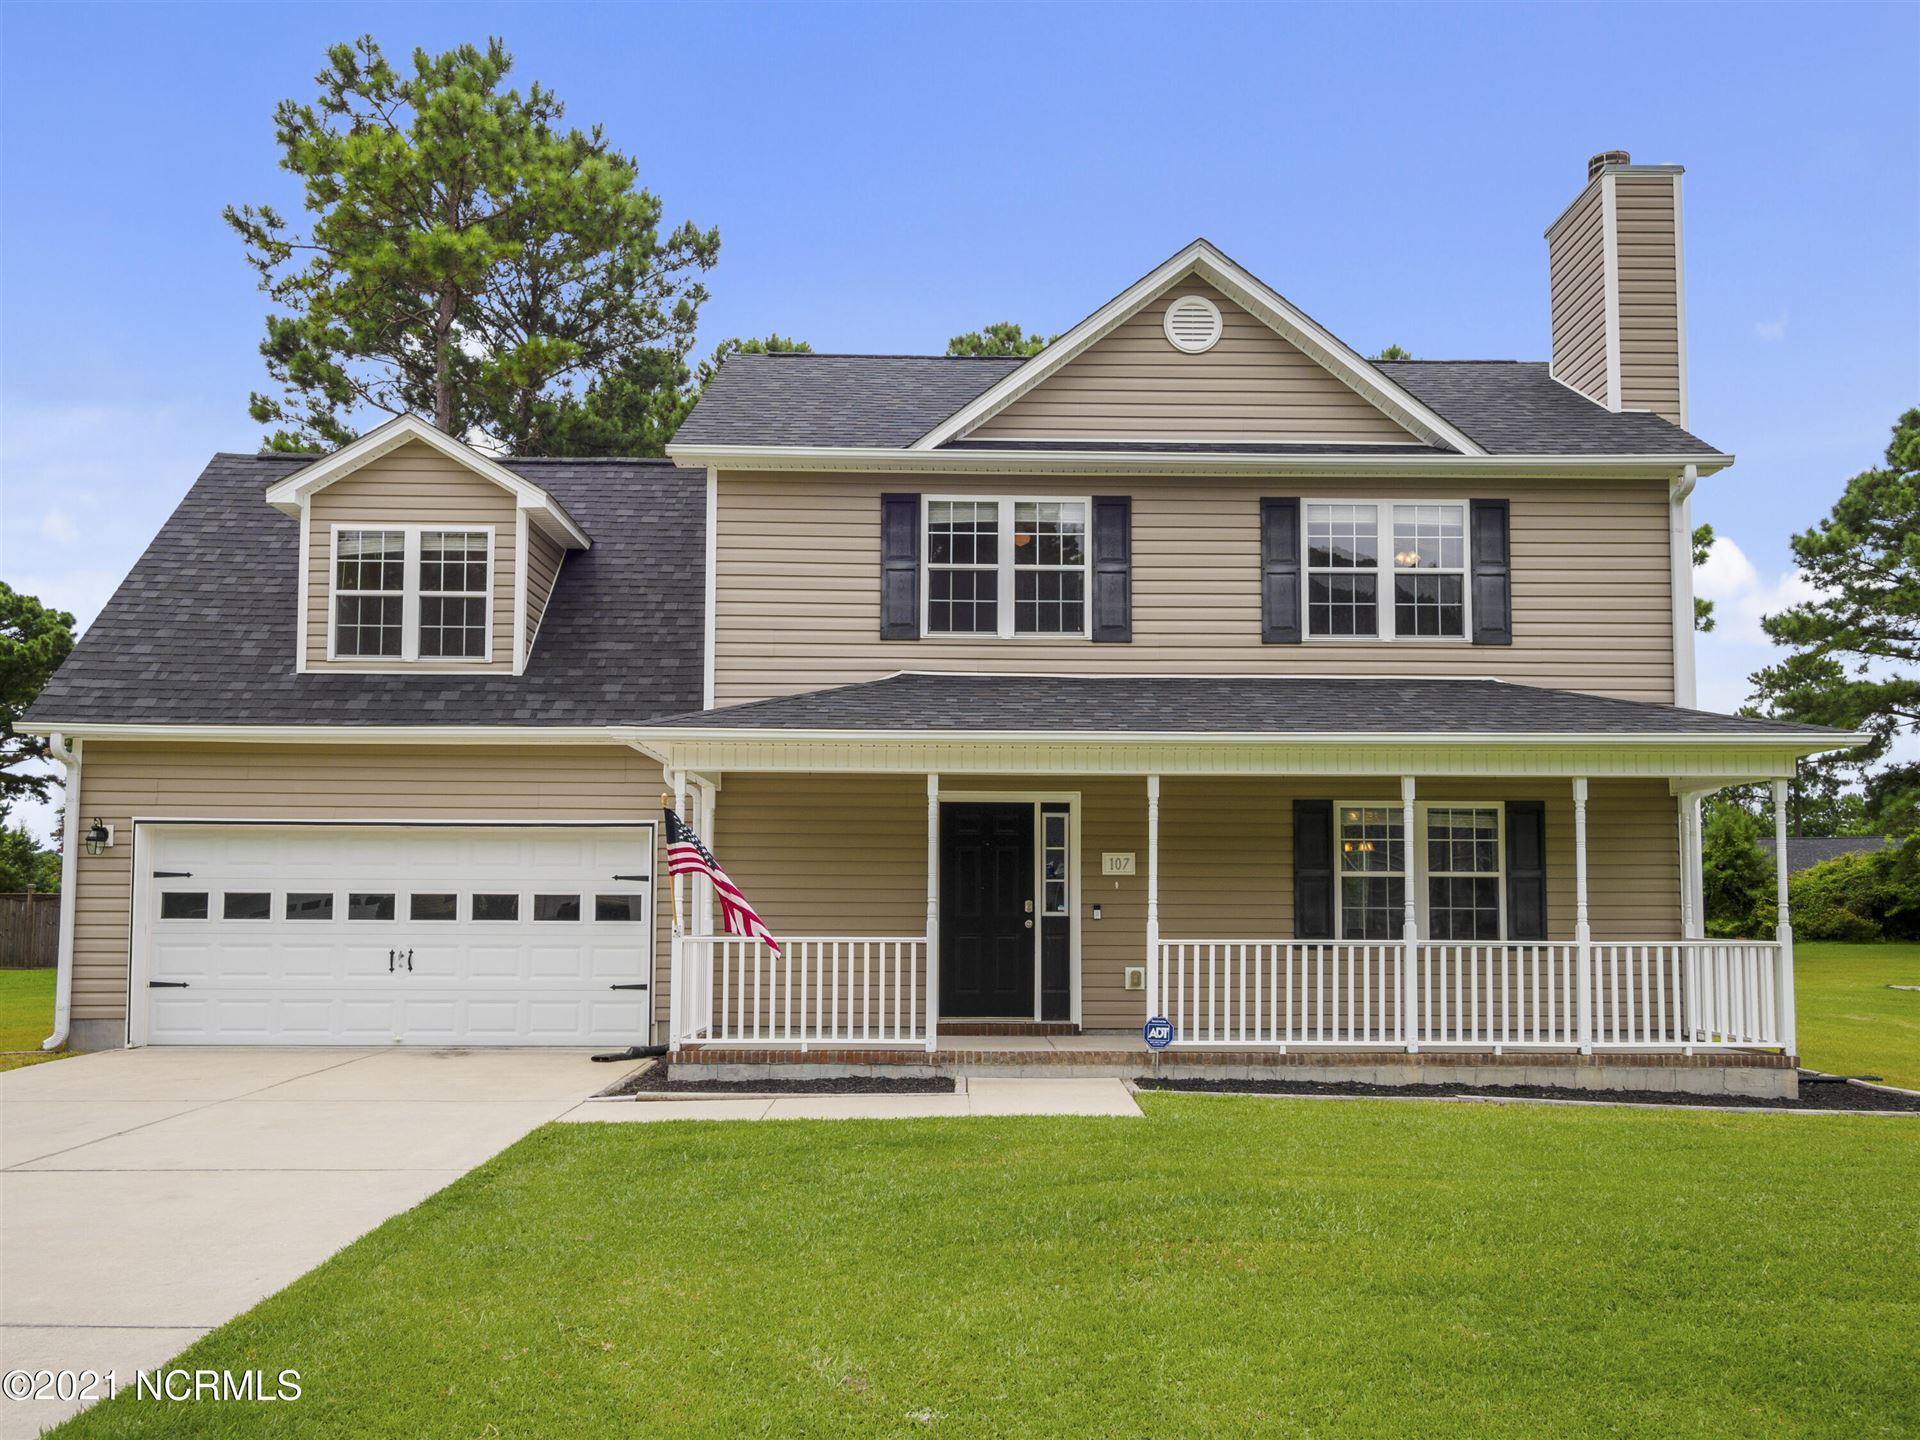 Photo for 107 Knotts Court, Sneads Ferry, NC 28460 (MLS # 100281706)